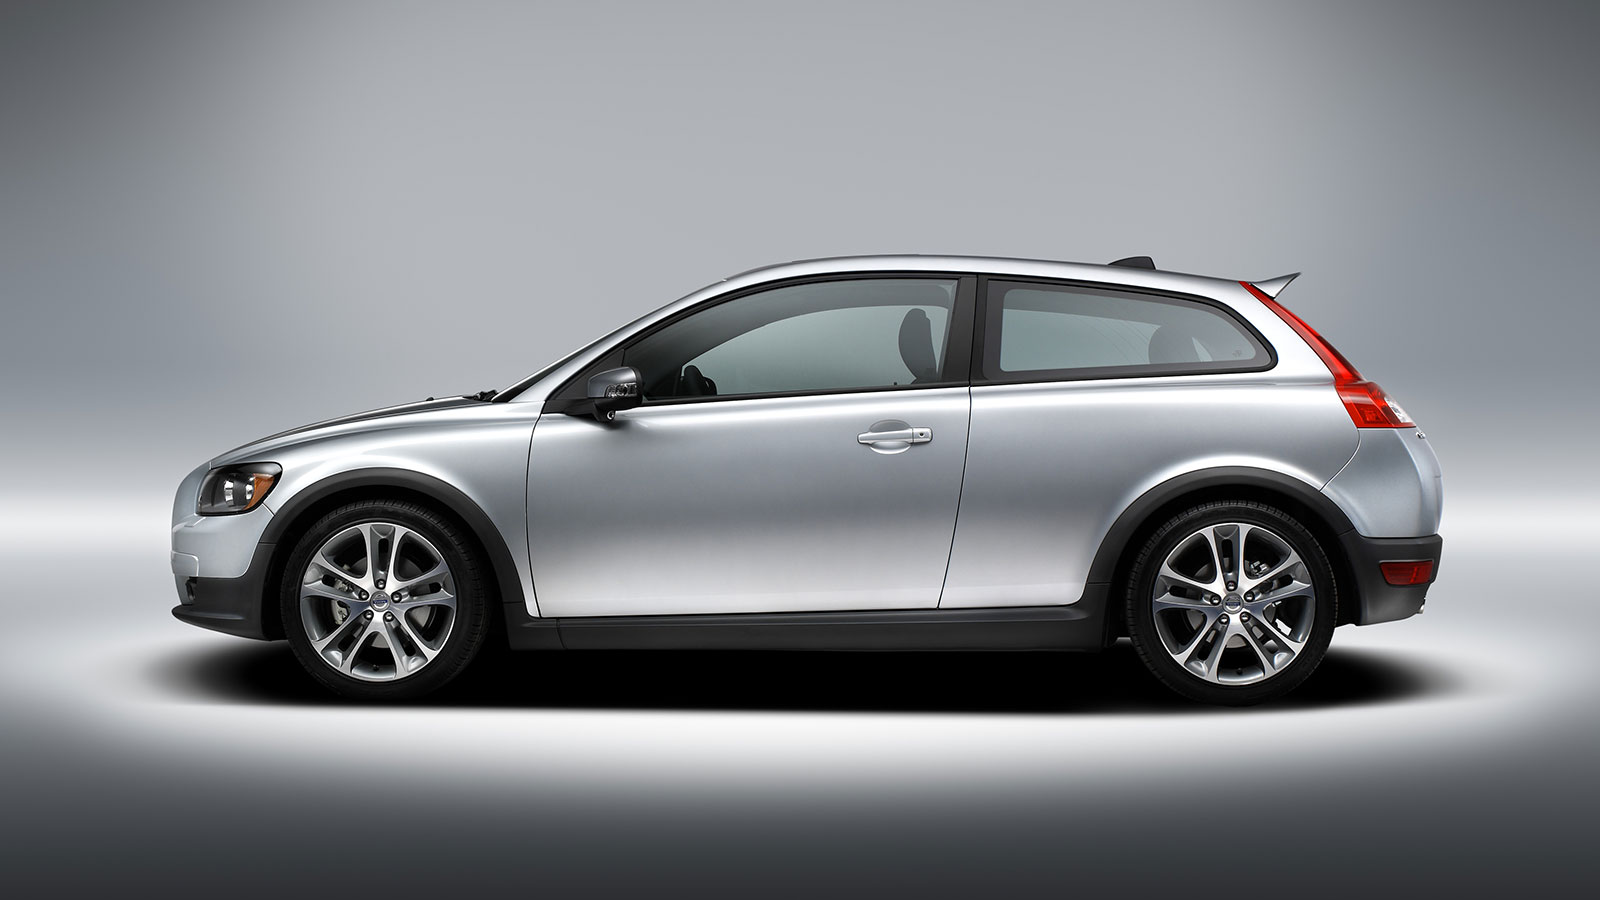 2017 Volvo C30 Design Concept photo - 1